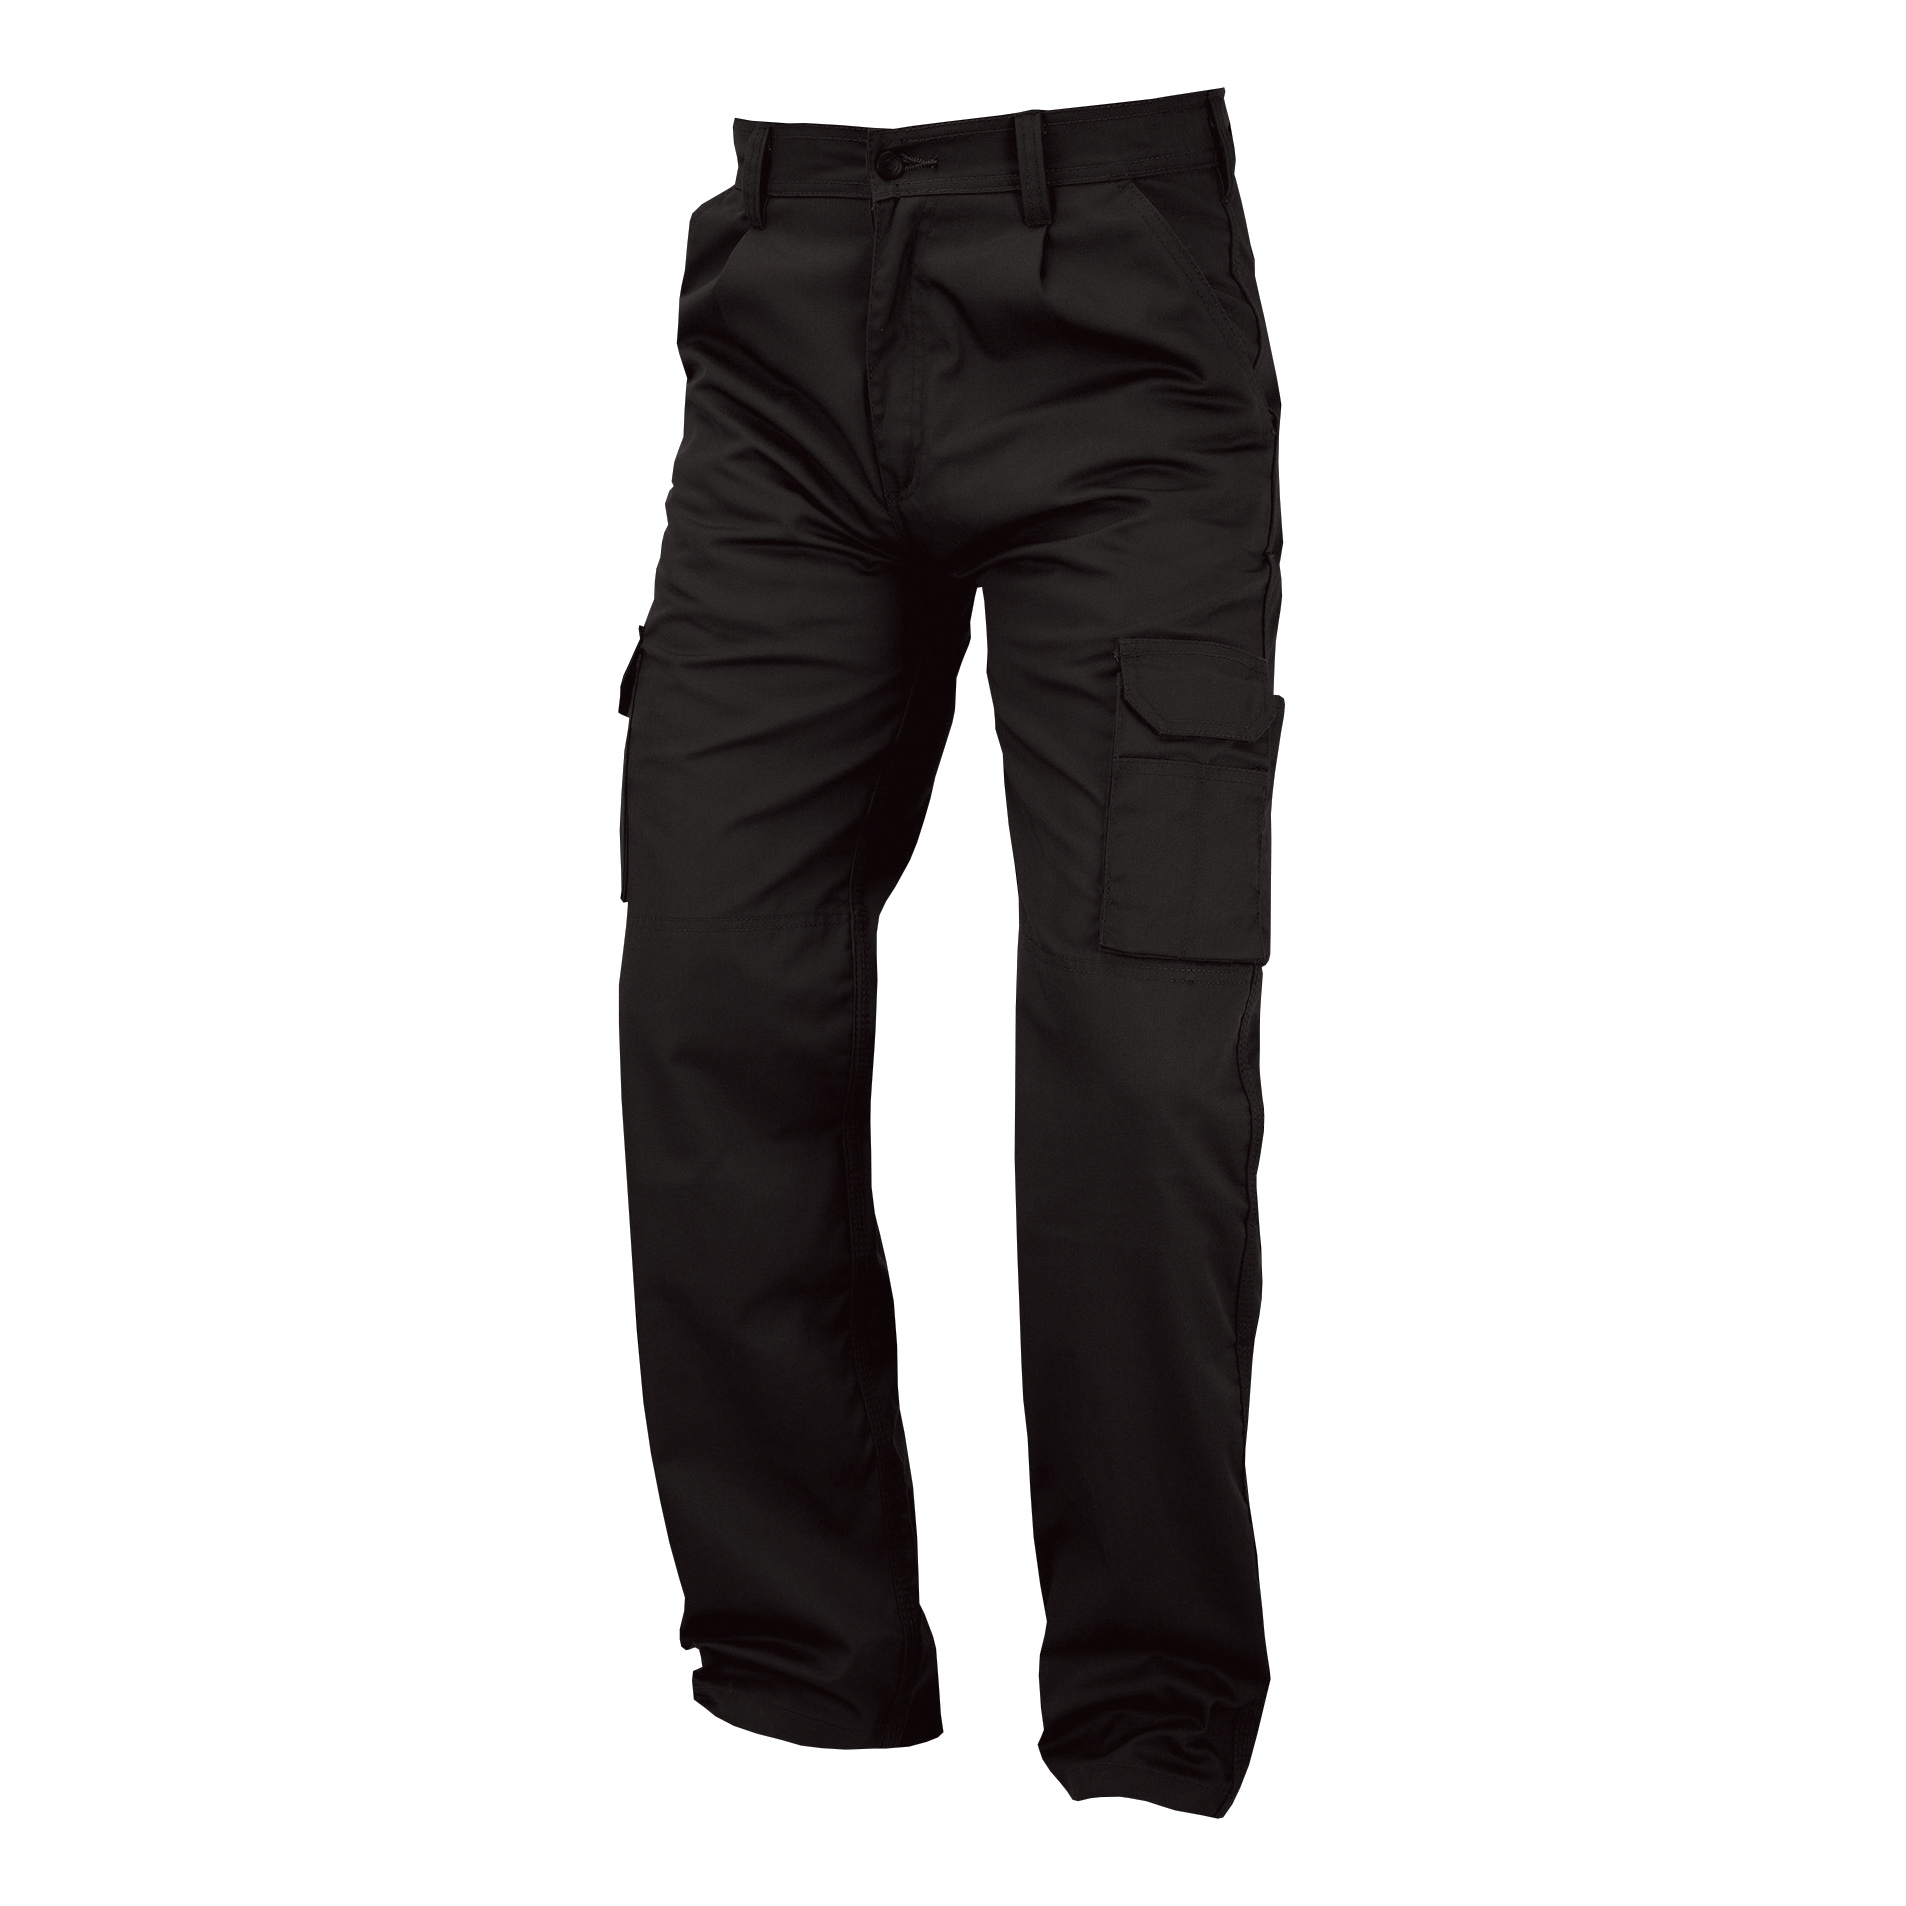 Combat Trousers Polycotton with Pockets 36in Regular Black Ref PCTHWBL34T *1-3 Days Lead Time*